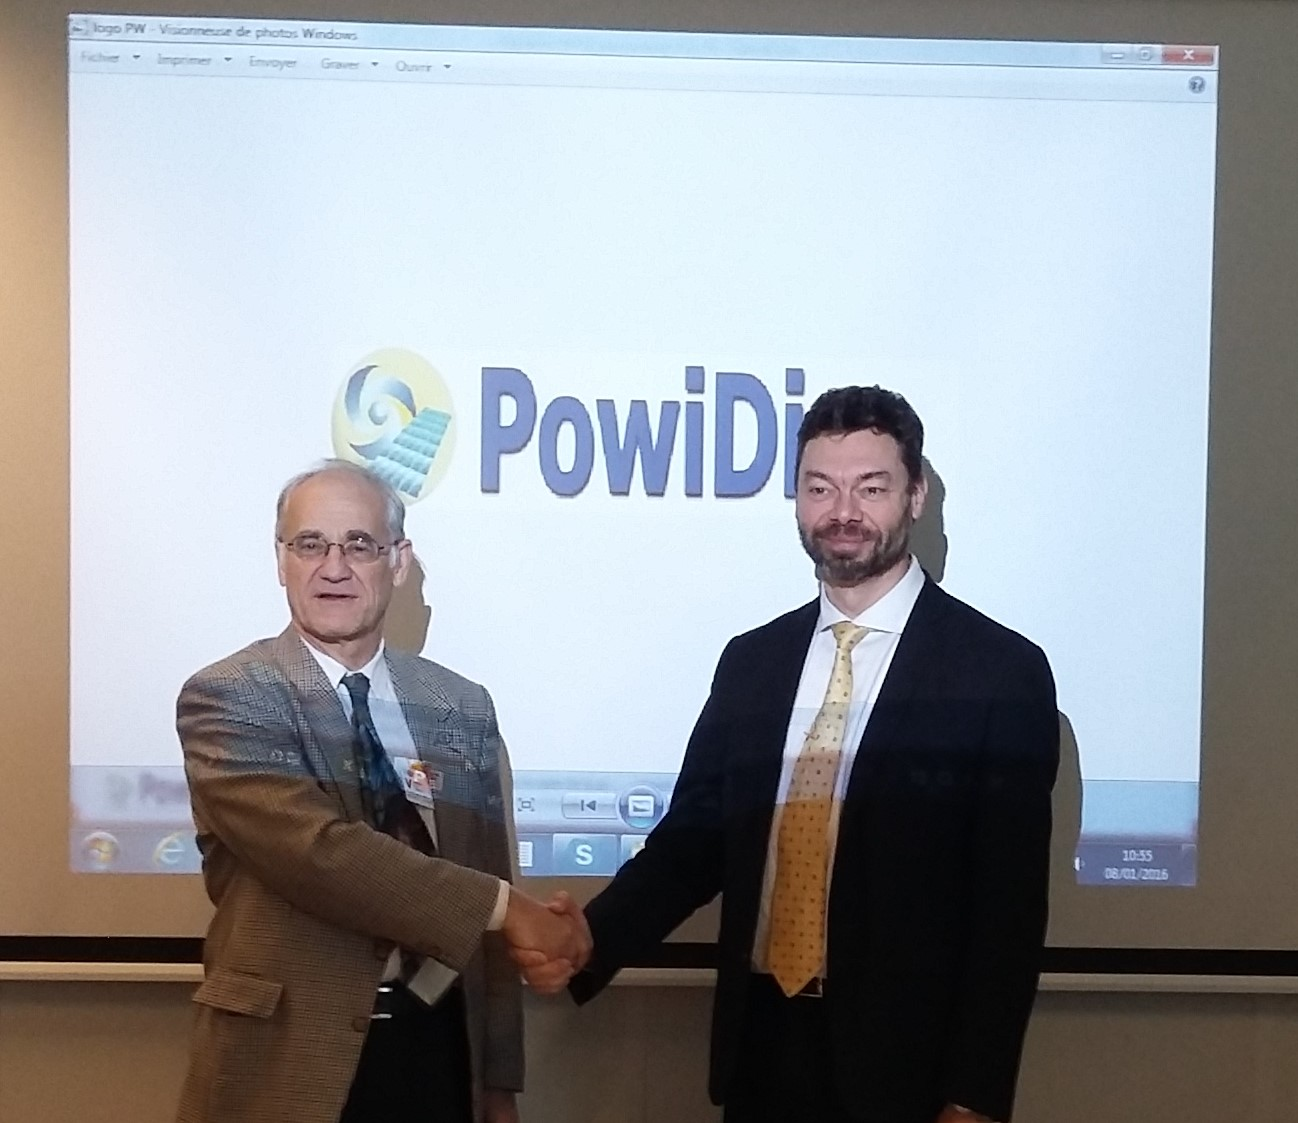 Pierre Langer CEO of PowiDian signing the contract with Pierre Bauche CEO of MOSS